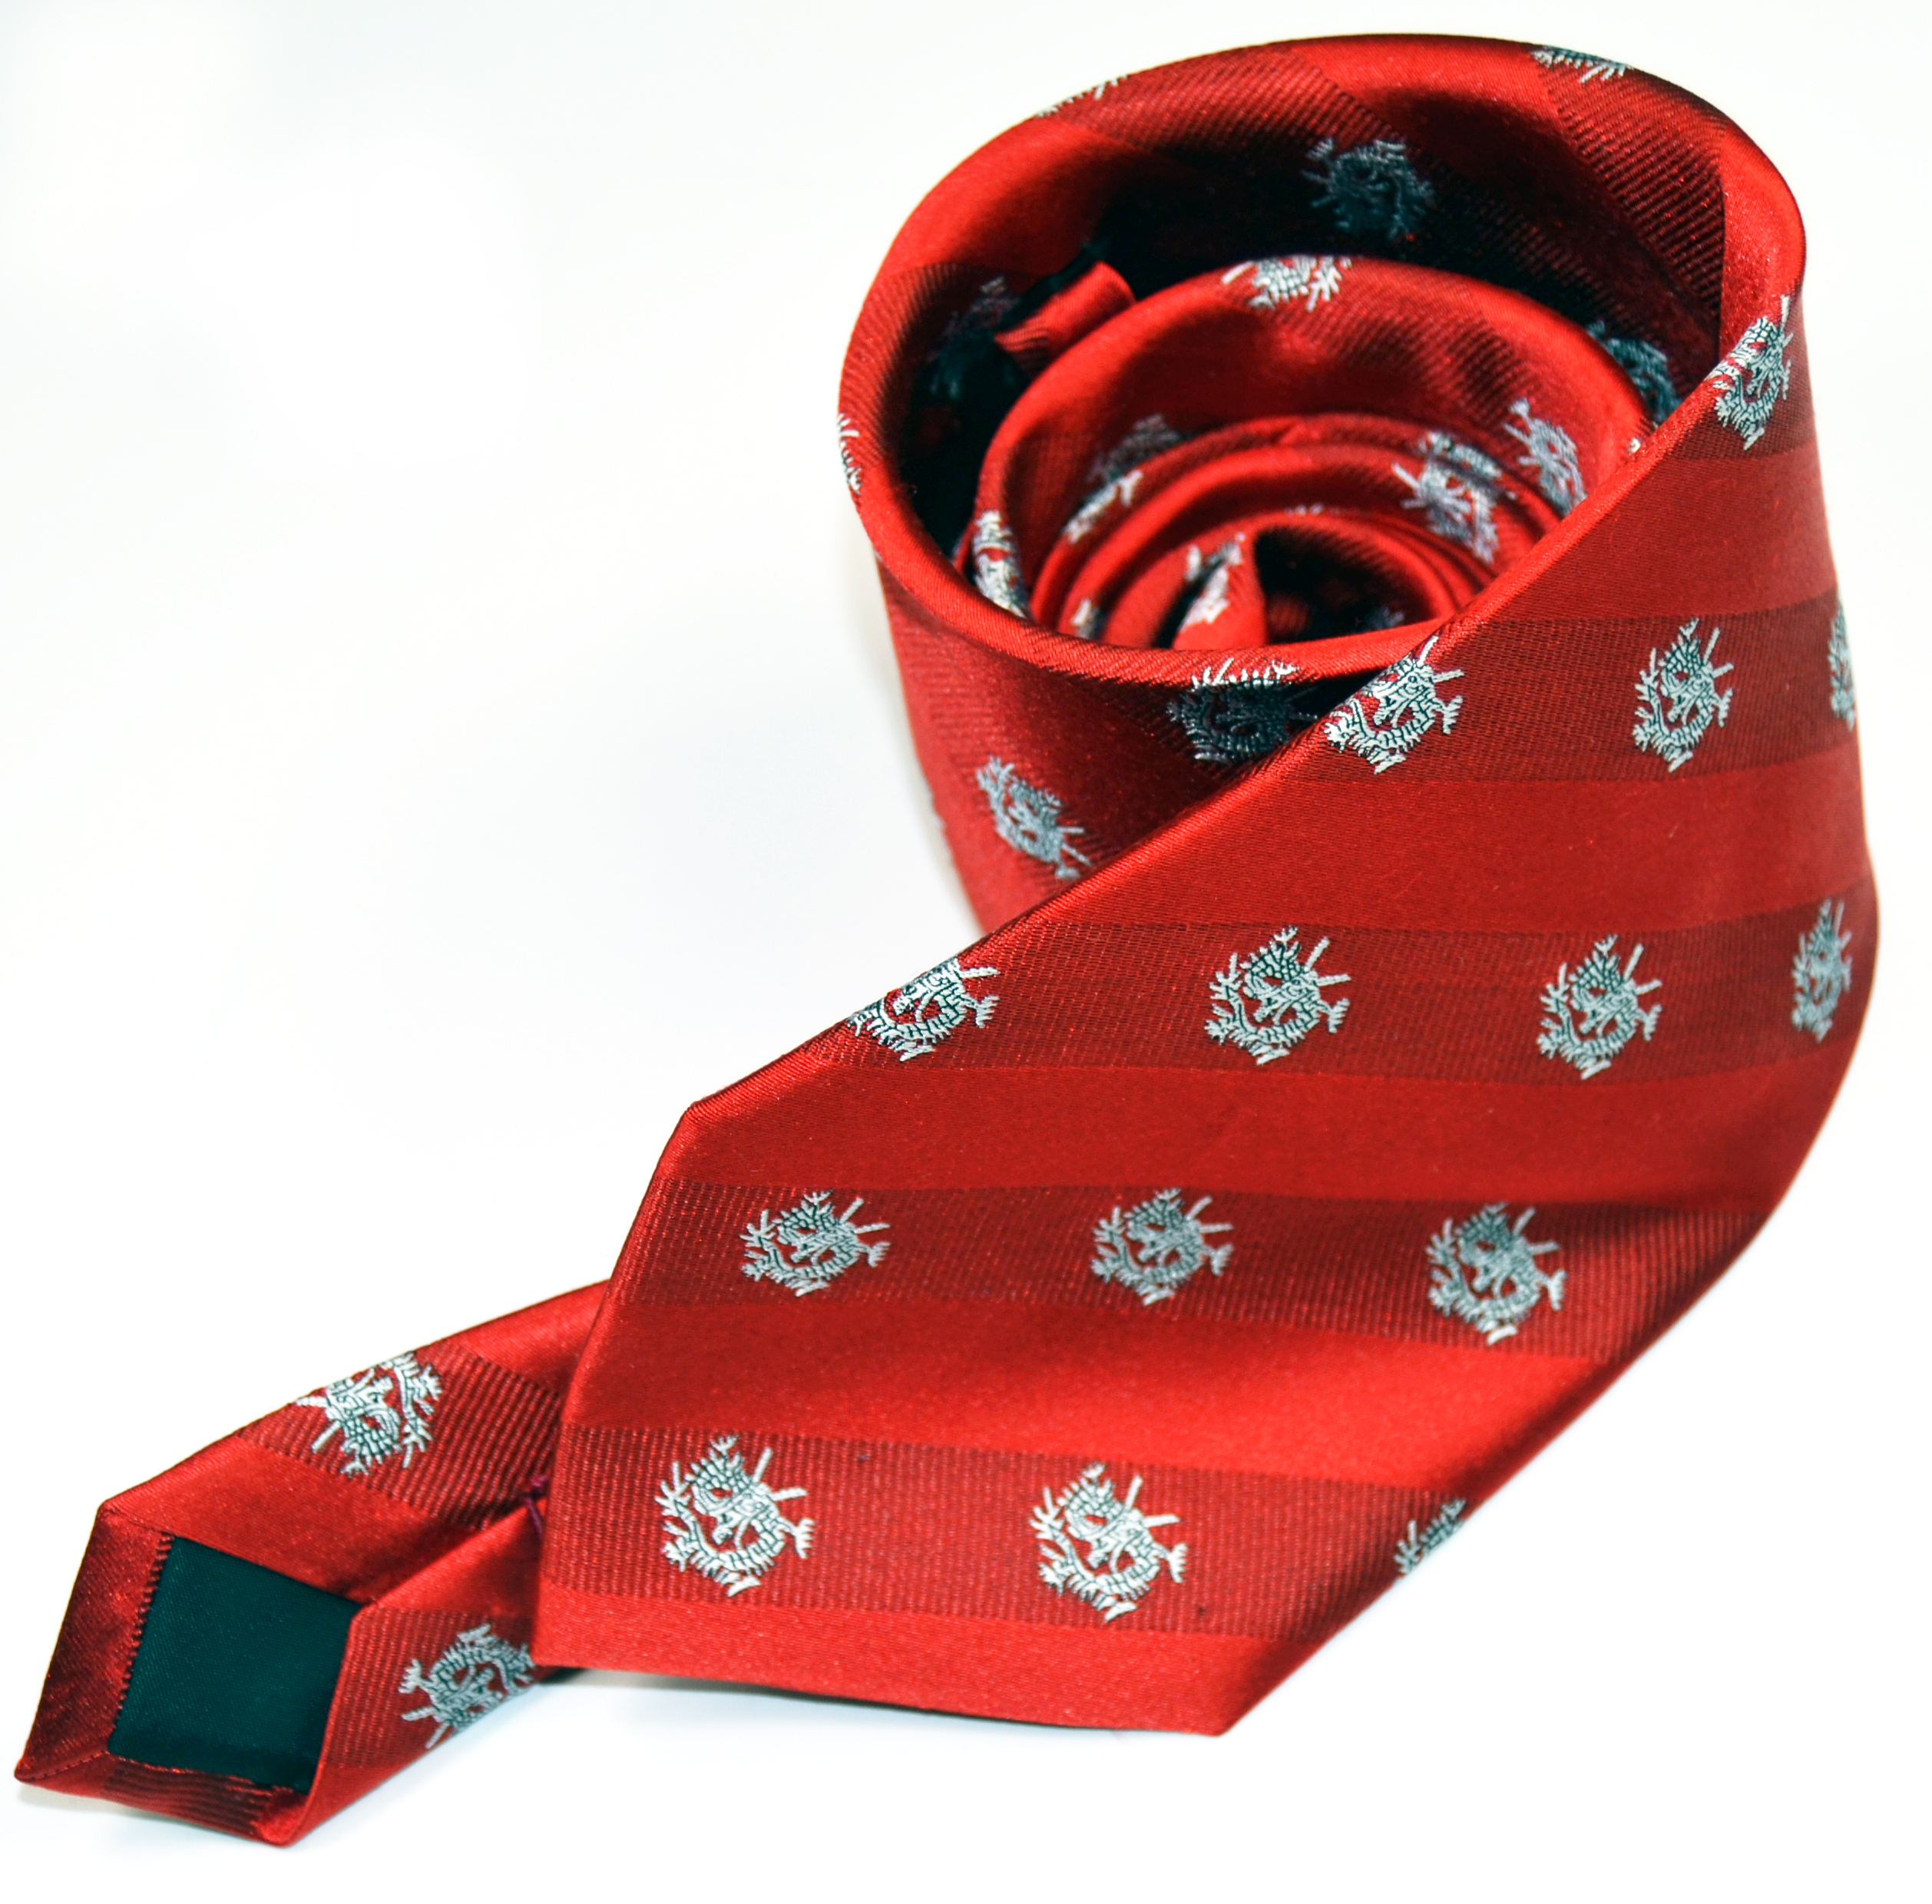 Custom Design Necktie Manufacturer Handmade 100% Silk Woven Ties